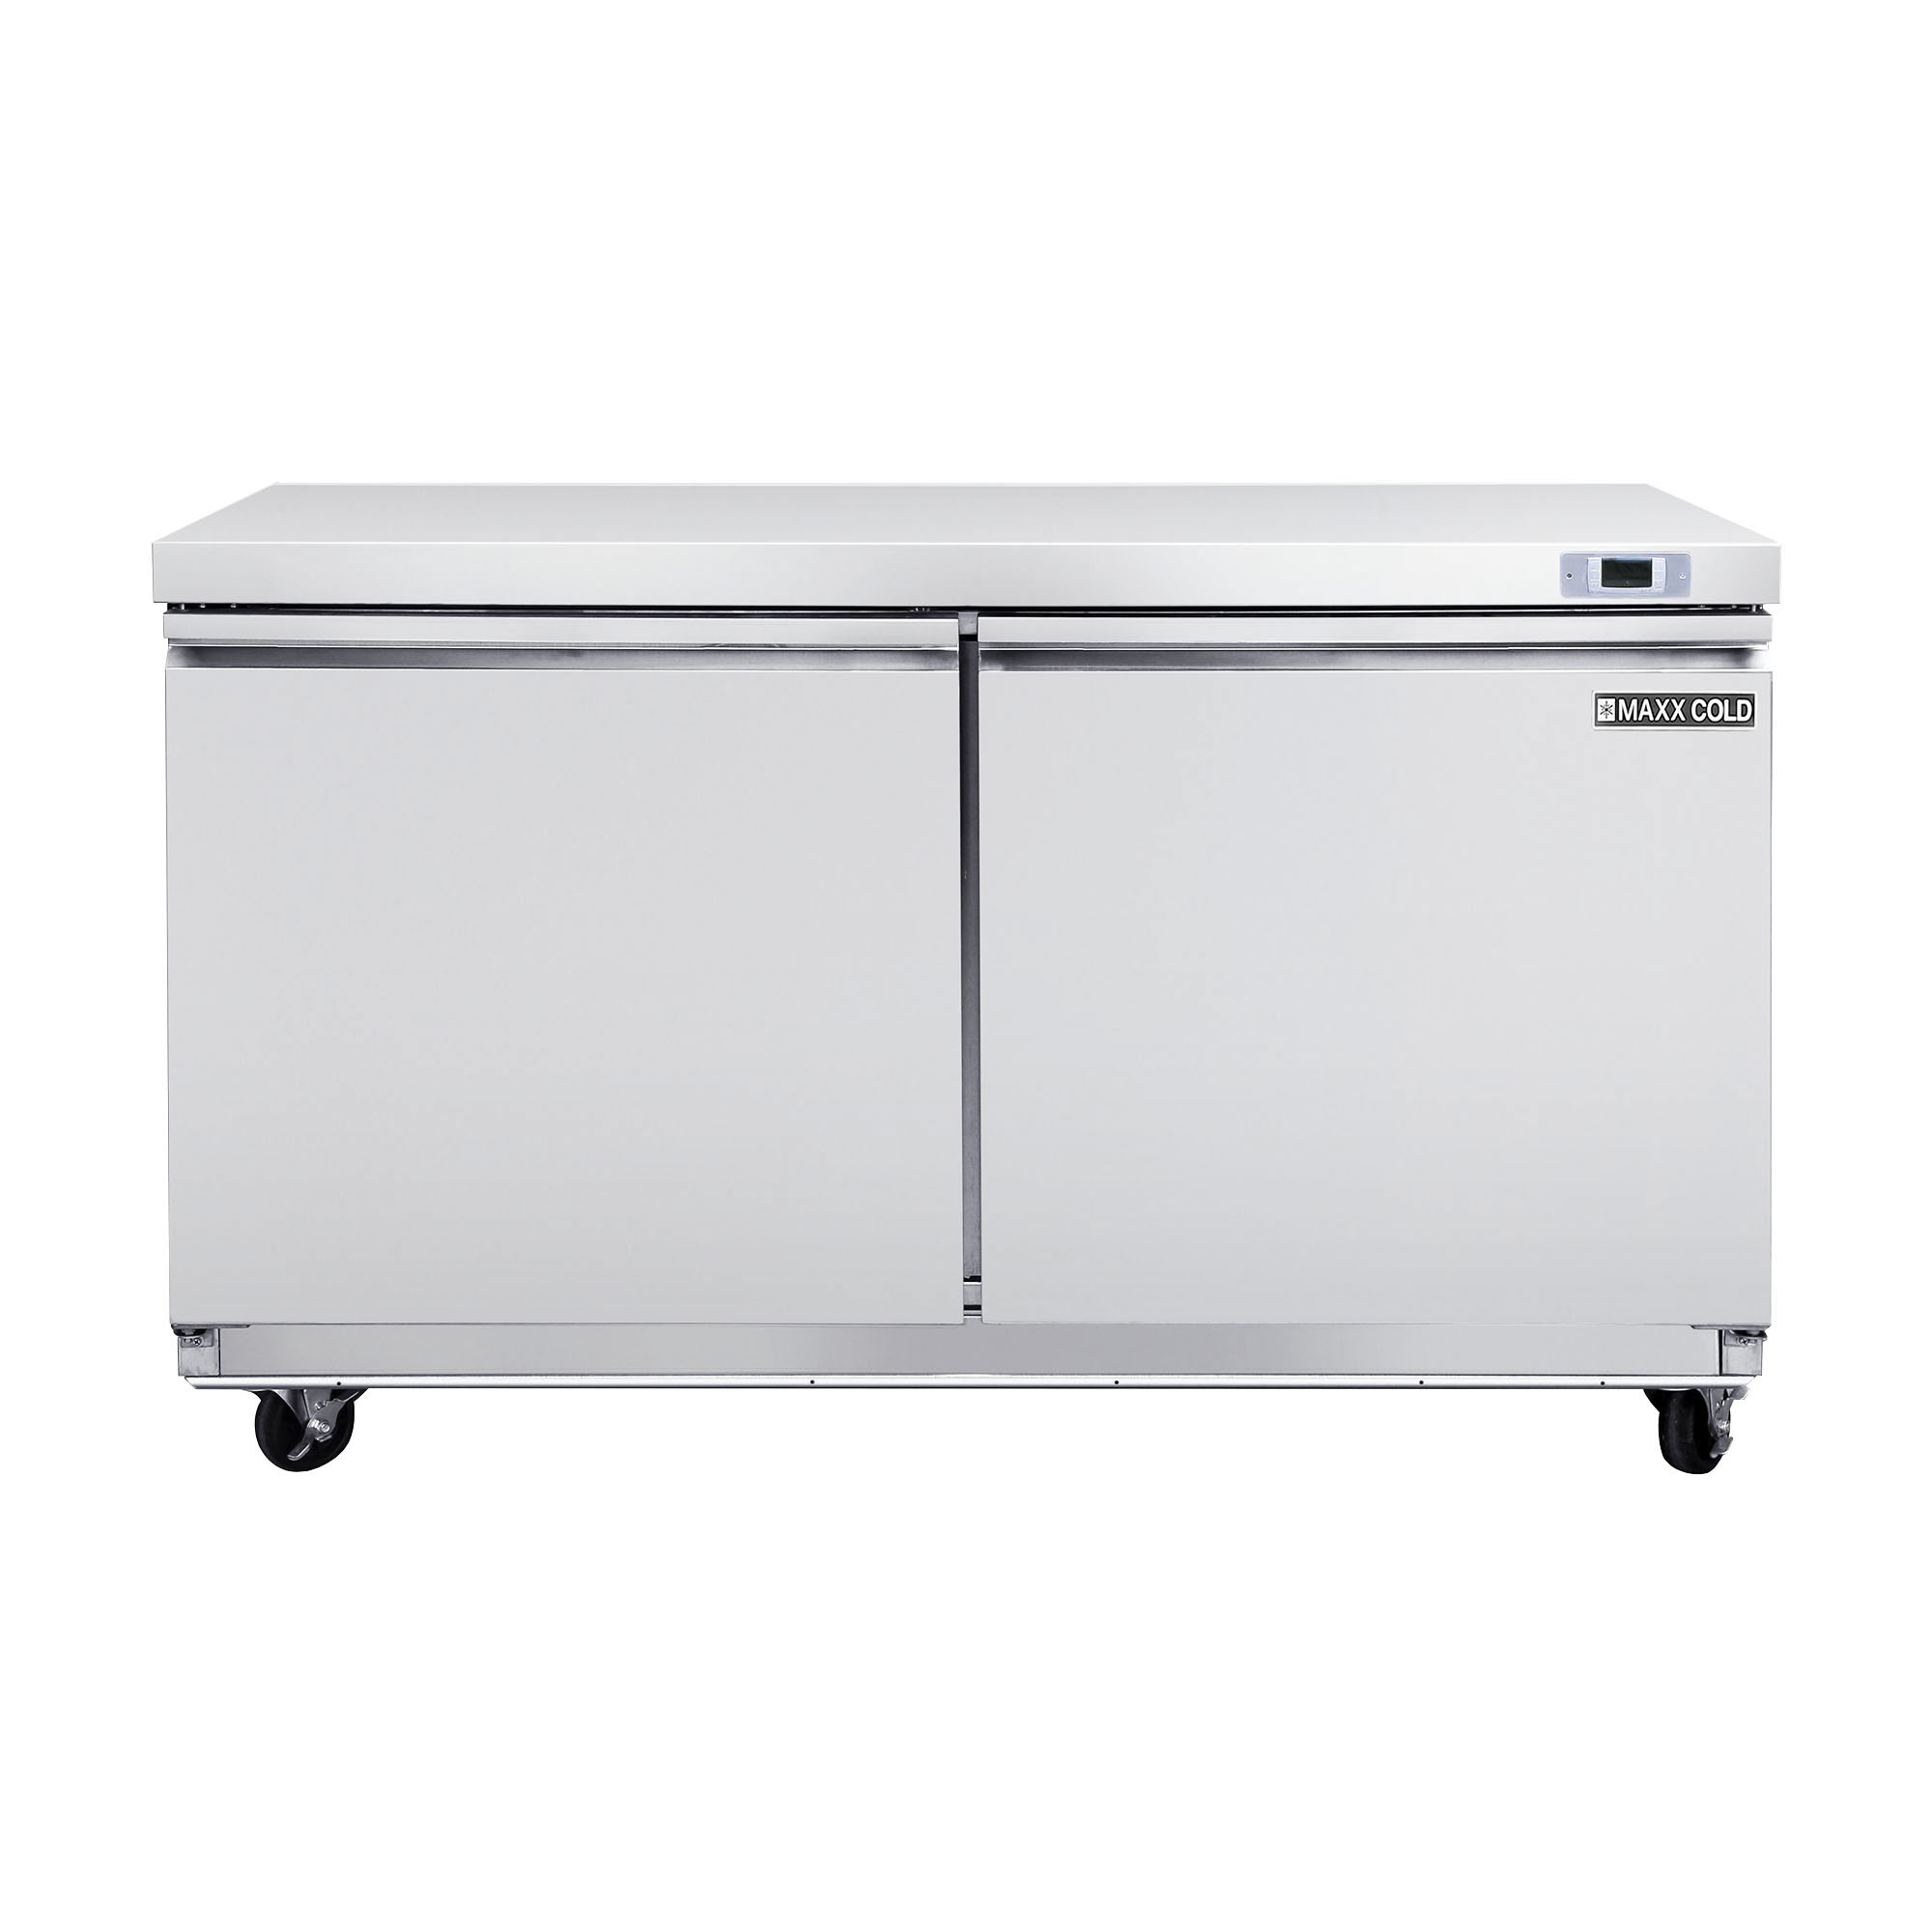 Maxximum MXSF60U freezer, undercounter, reach-in